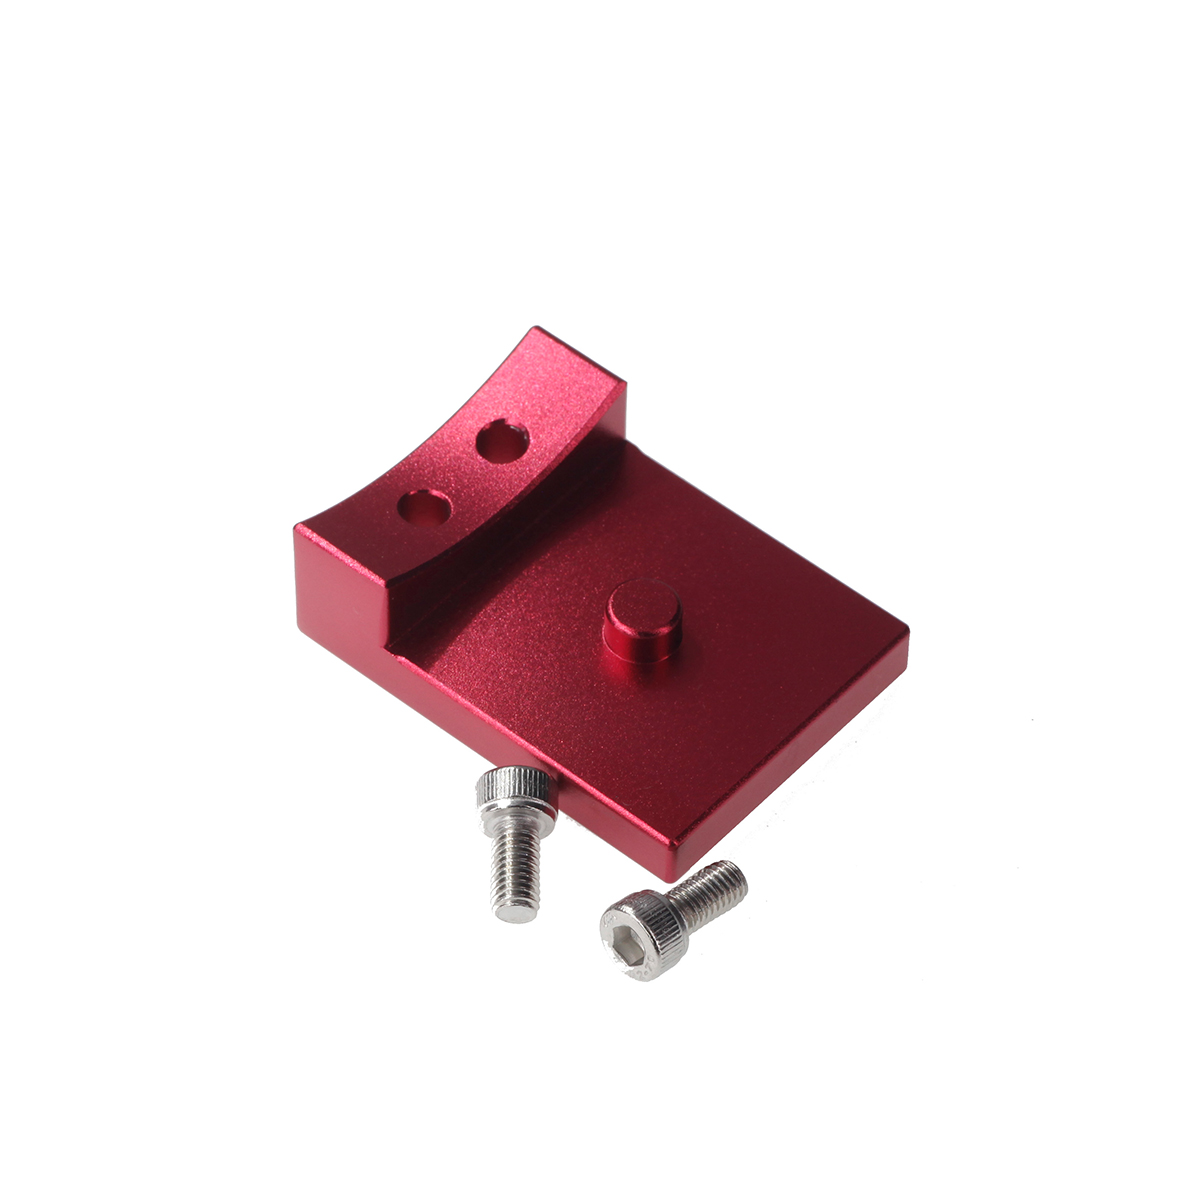 Tripod Adapter (for cooling cams)